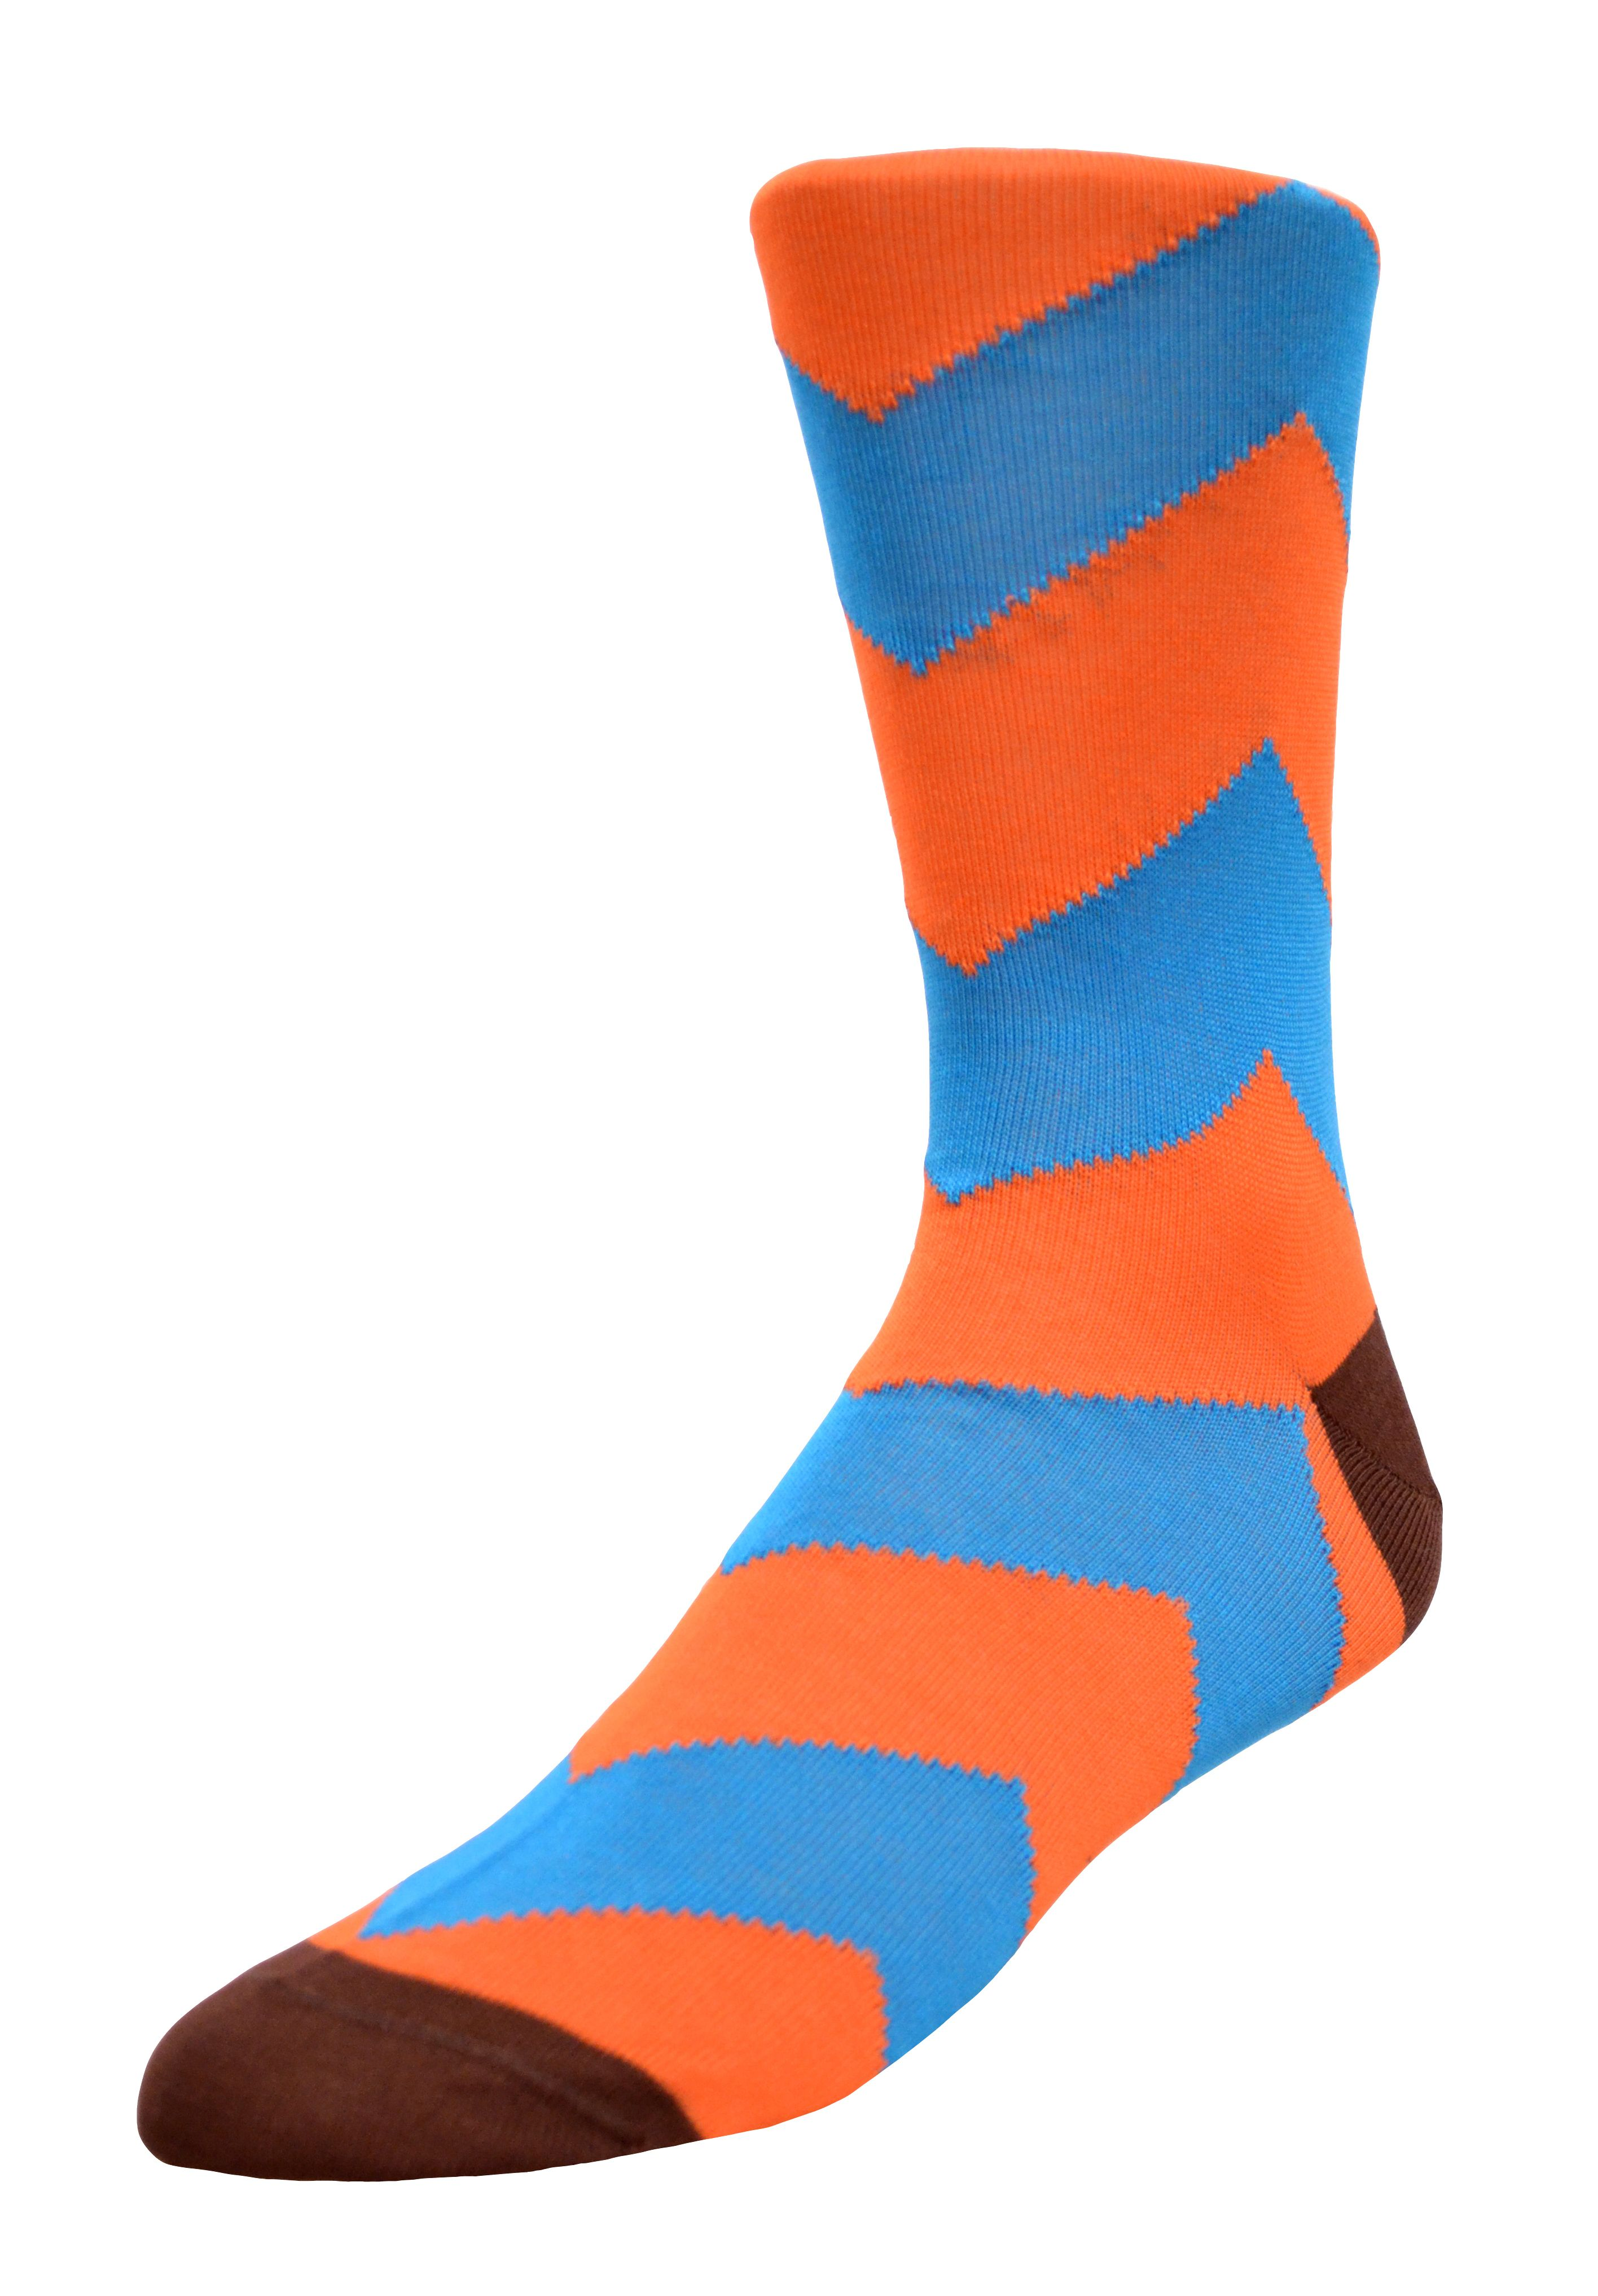 Now Available on www.lorenzouomo.com! Cotton Herringbone Sock- Bright colors with contrasting heel and toe!